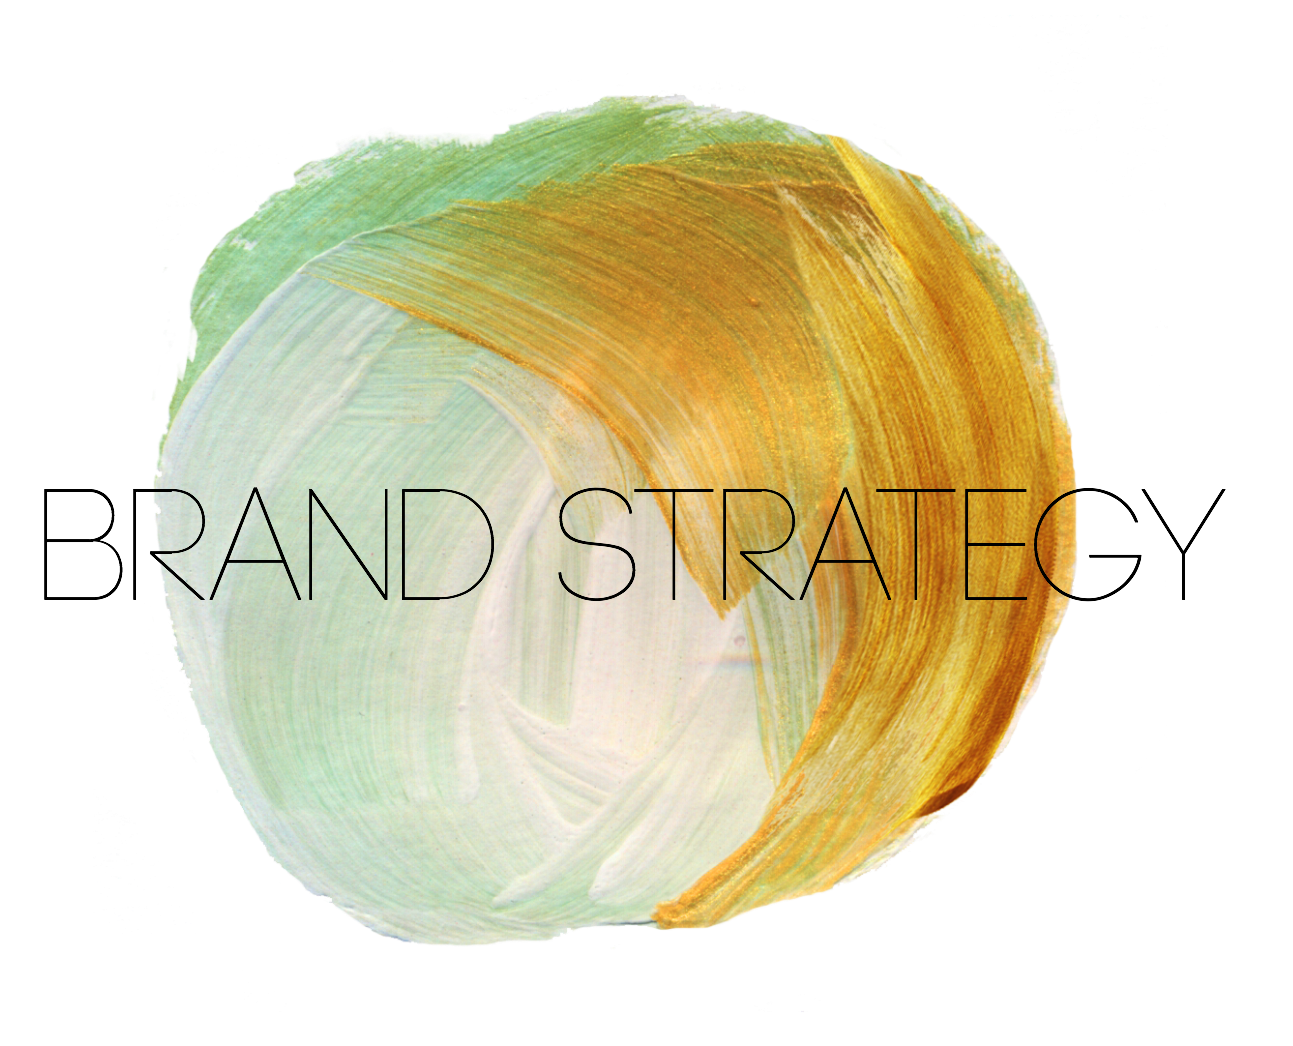 2pm CREATIVE LAB LLC- creative consulting & brand strategy